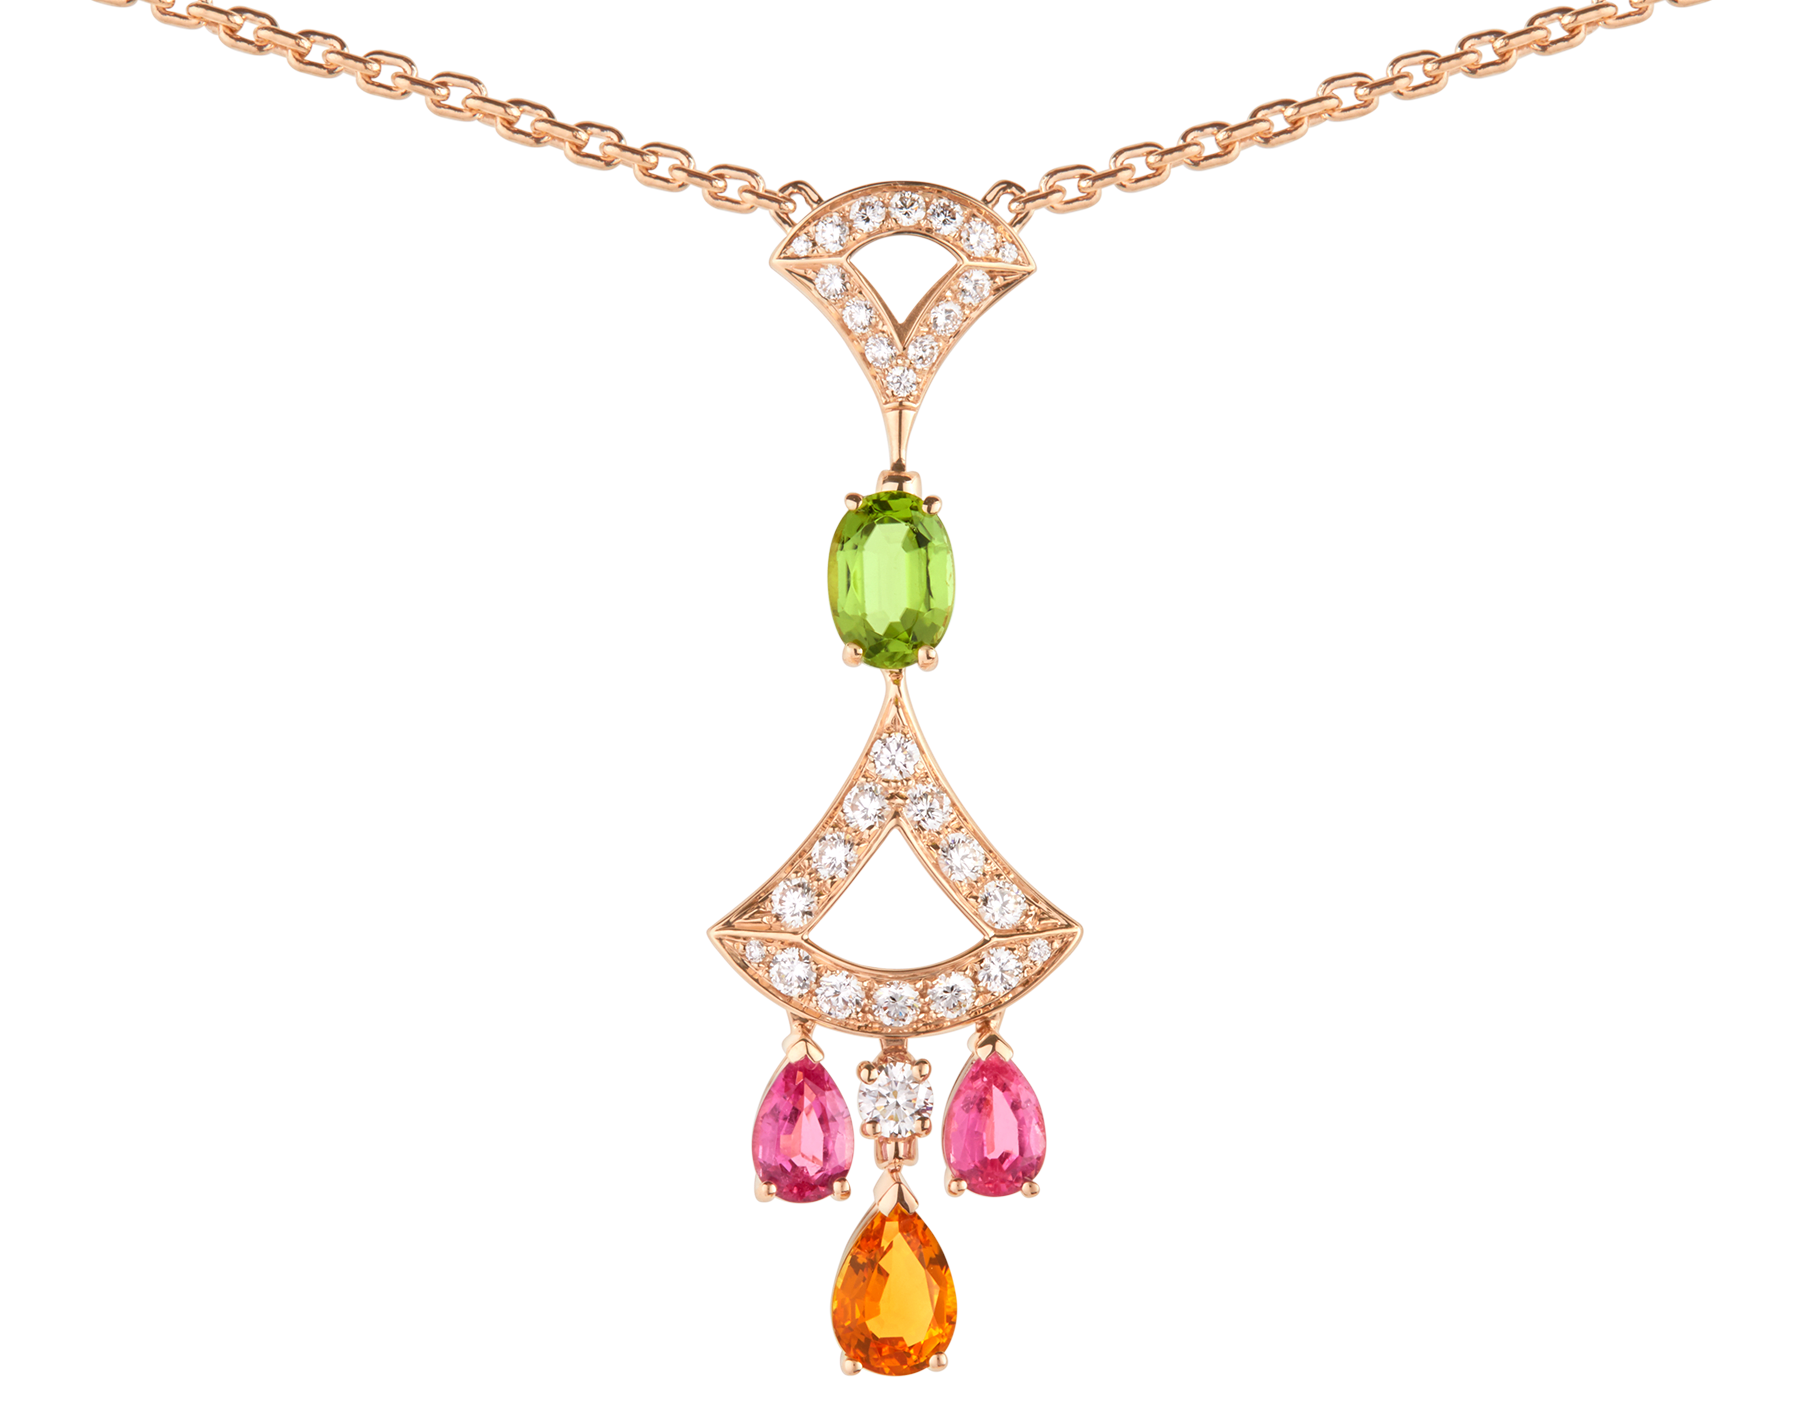 DIVAS' DREAM 18 kt rose gold necklace set with coloured gemstones, a brilliant-cut diamond and pavé diamonds. 355613 image 3